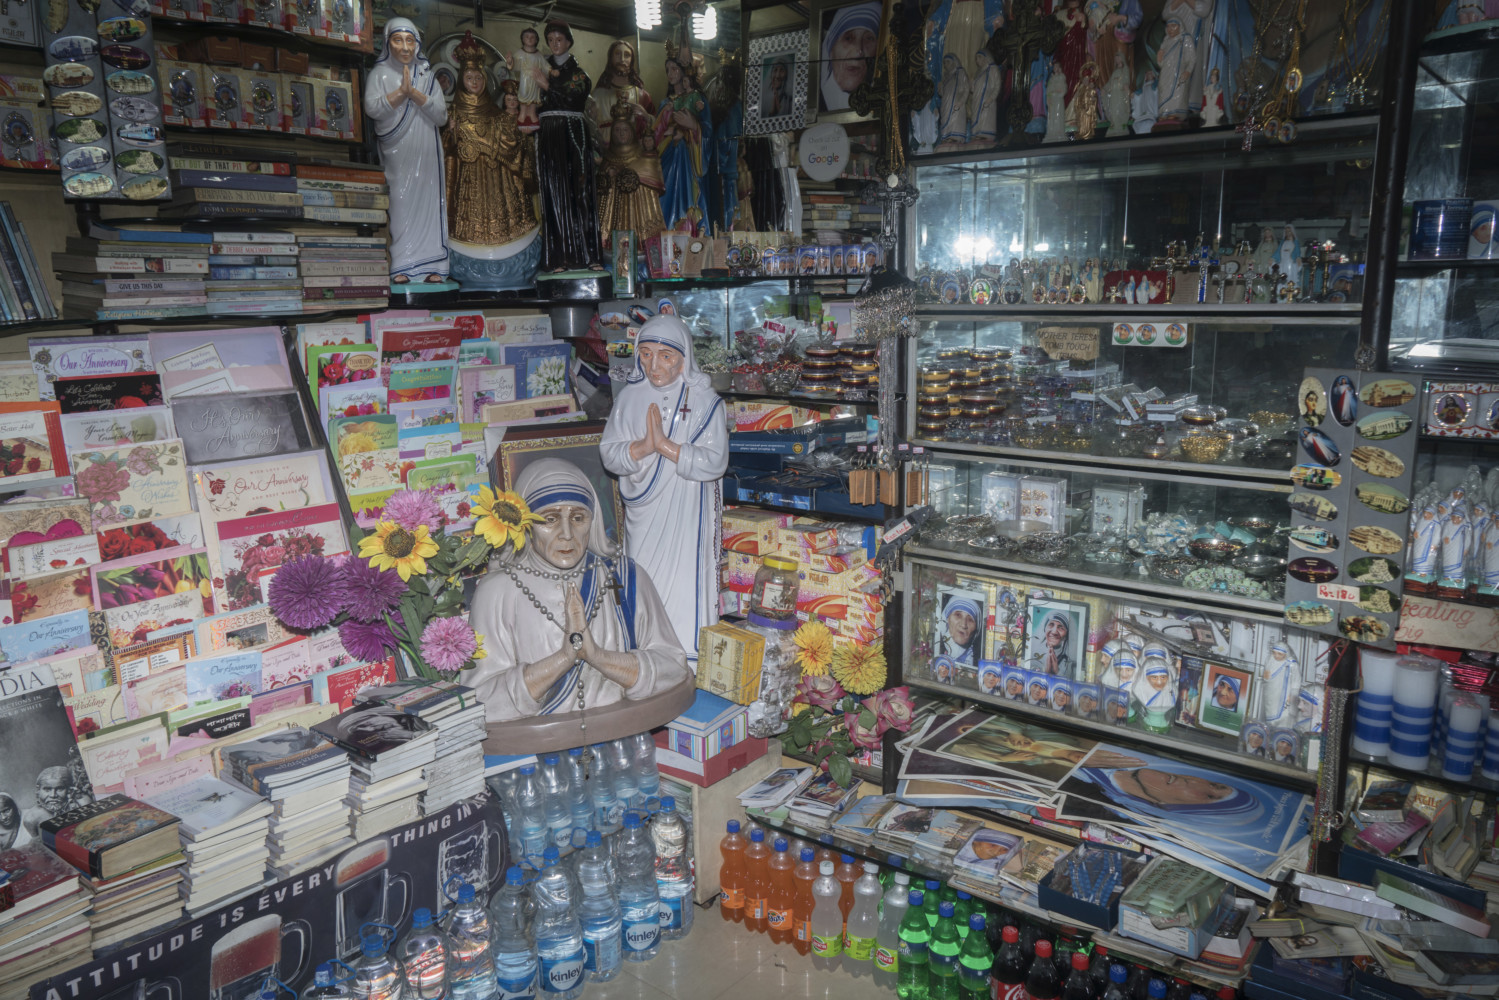 From the Magnum Photos Website: Souvenir shop dedicated to Mother Teresa. It is widely expected that the canonisation of Mother Teresa will lead to larger numbers of foreign tourists inflow and the Indian Association of Tour Operators has urged the West Bengal State Government to promote Kolkata's links to Mother Teresa so as to take advantage of the tourism opportunities. Kolkata, India August 2016. © Sohrab Hura / Magnum Photos.